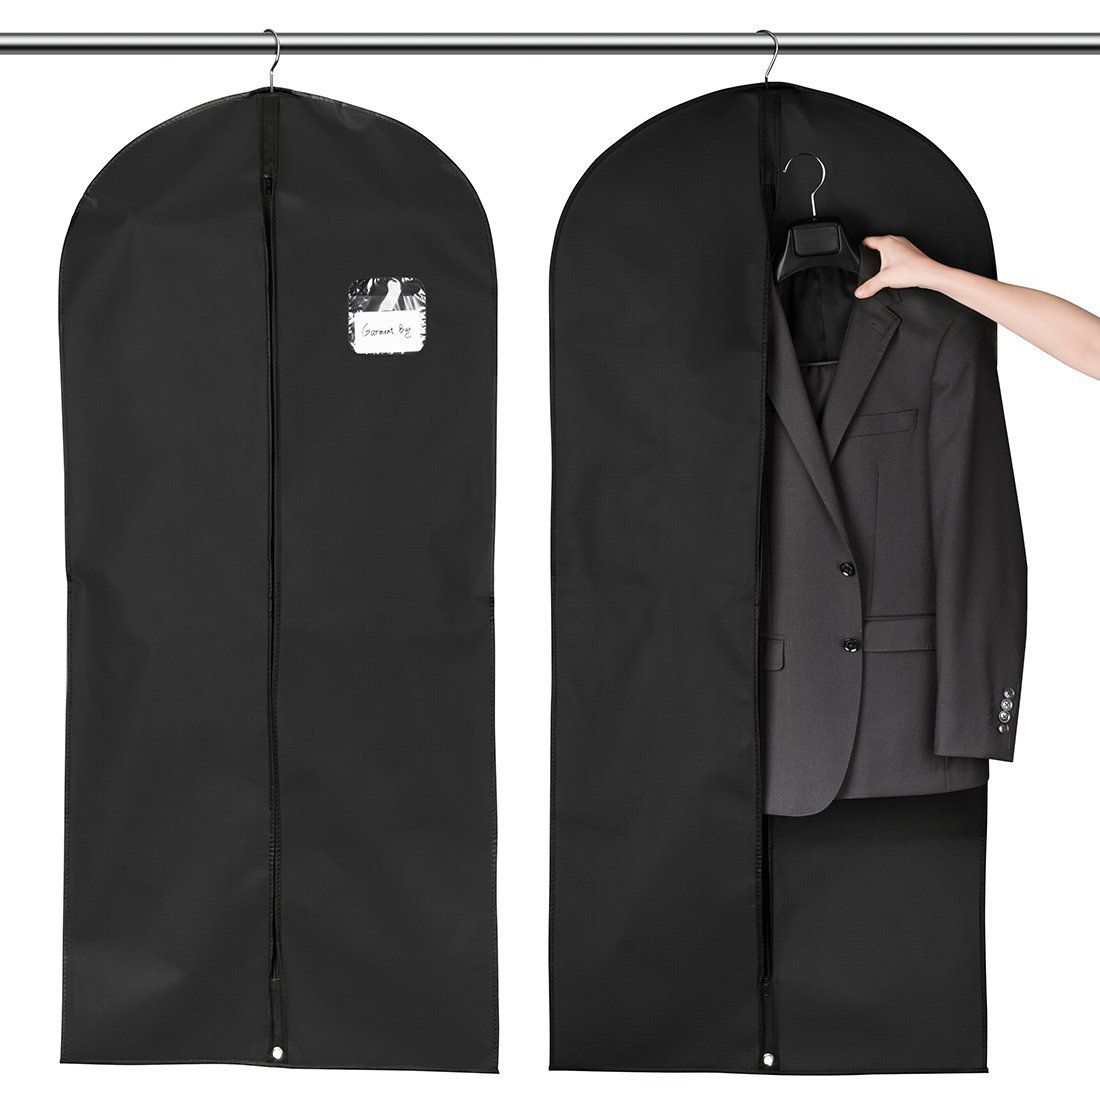 The 8 Best Travel Garment Bags to Buy in 2018